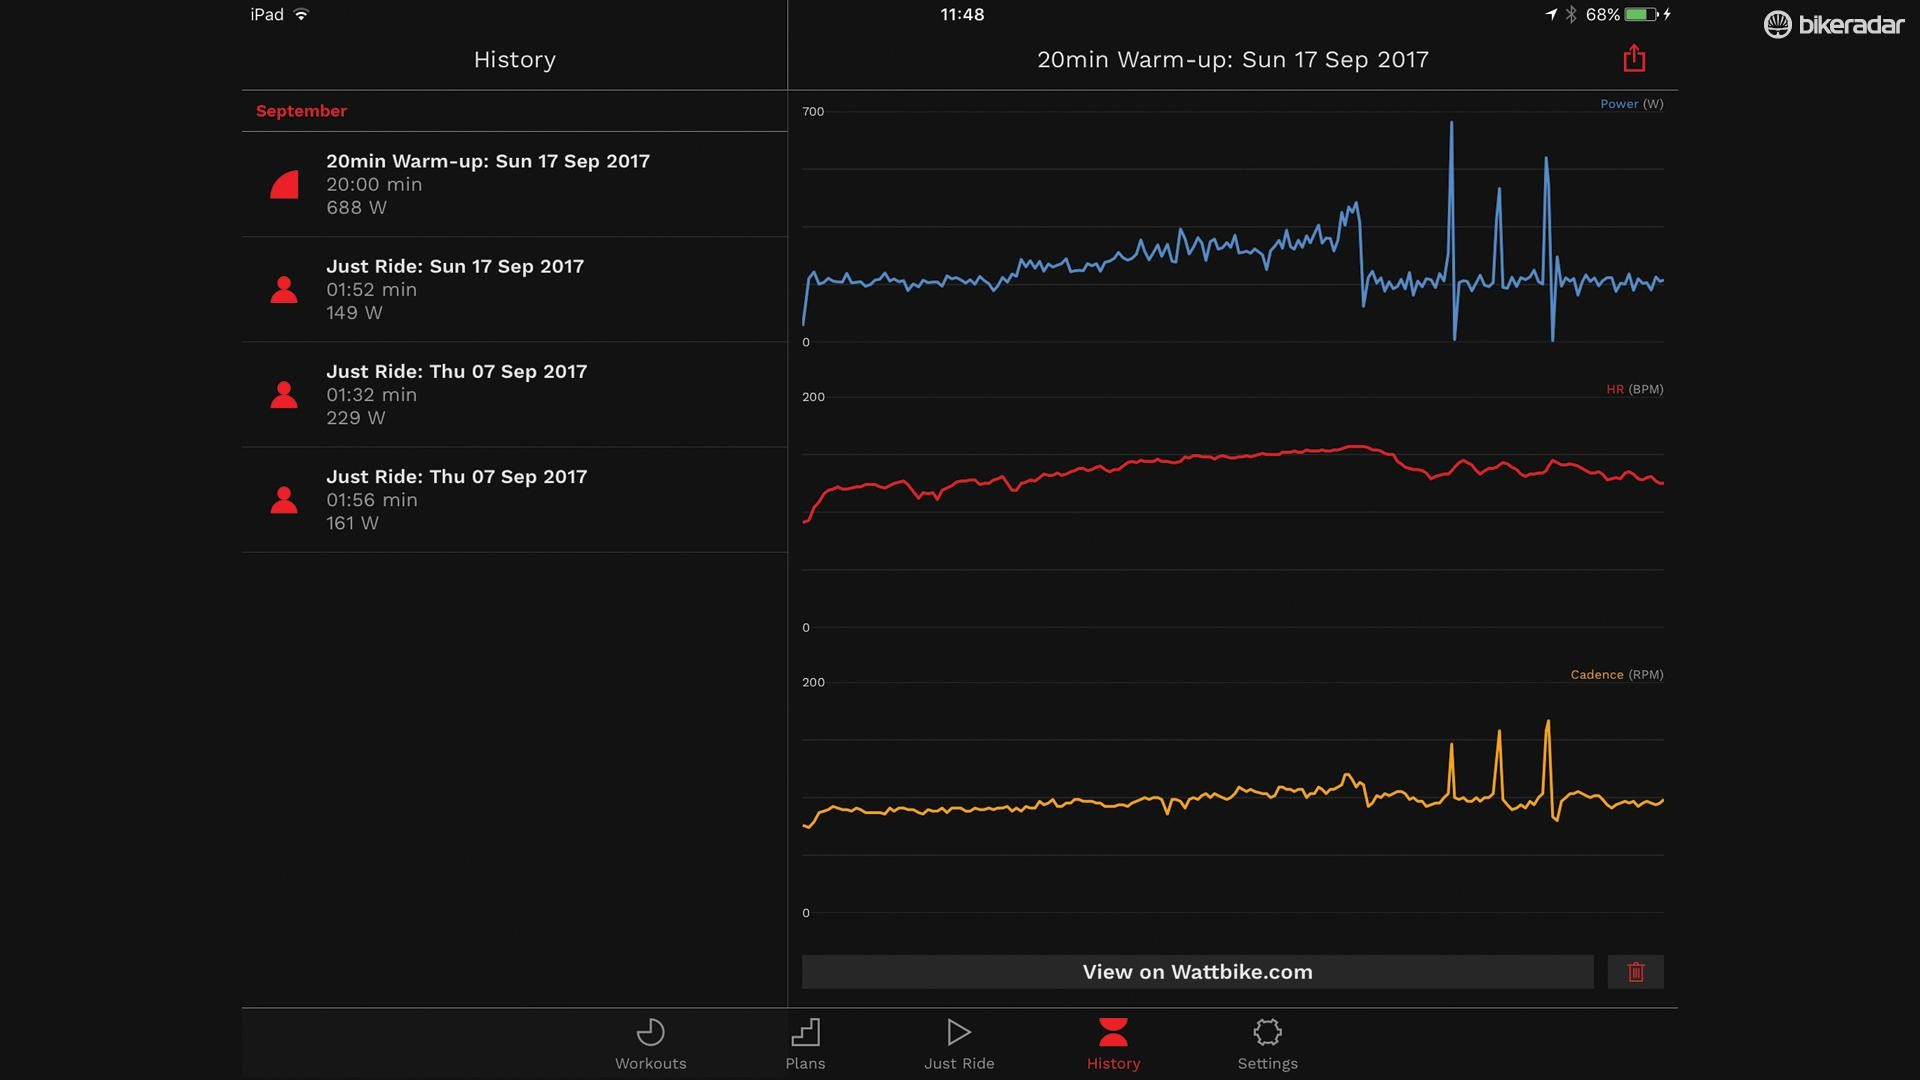 When you start to train with power seriously, these graphs become very important